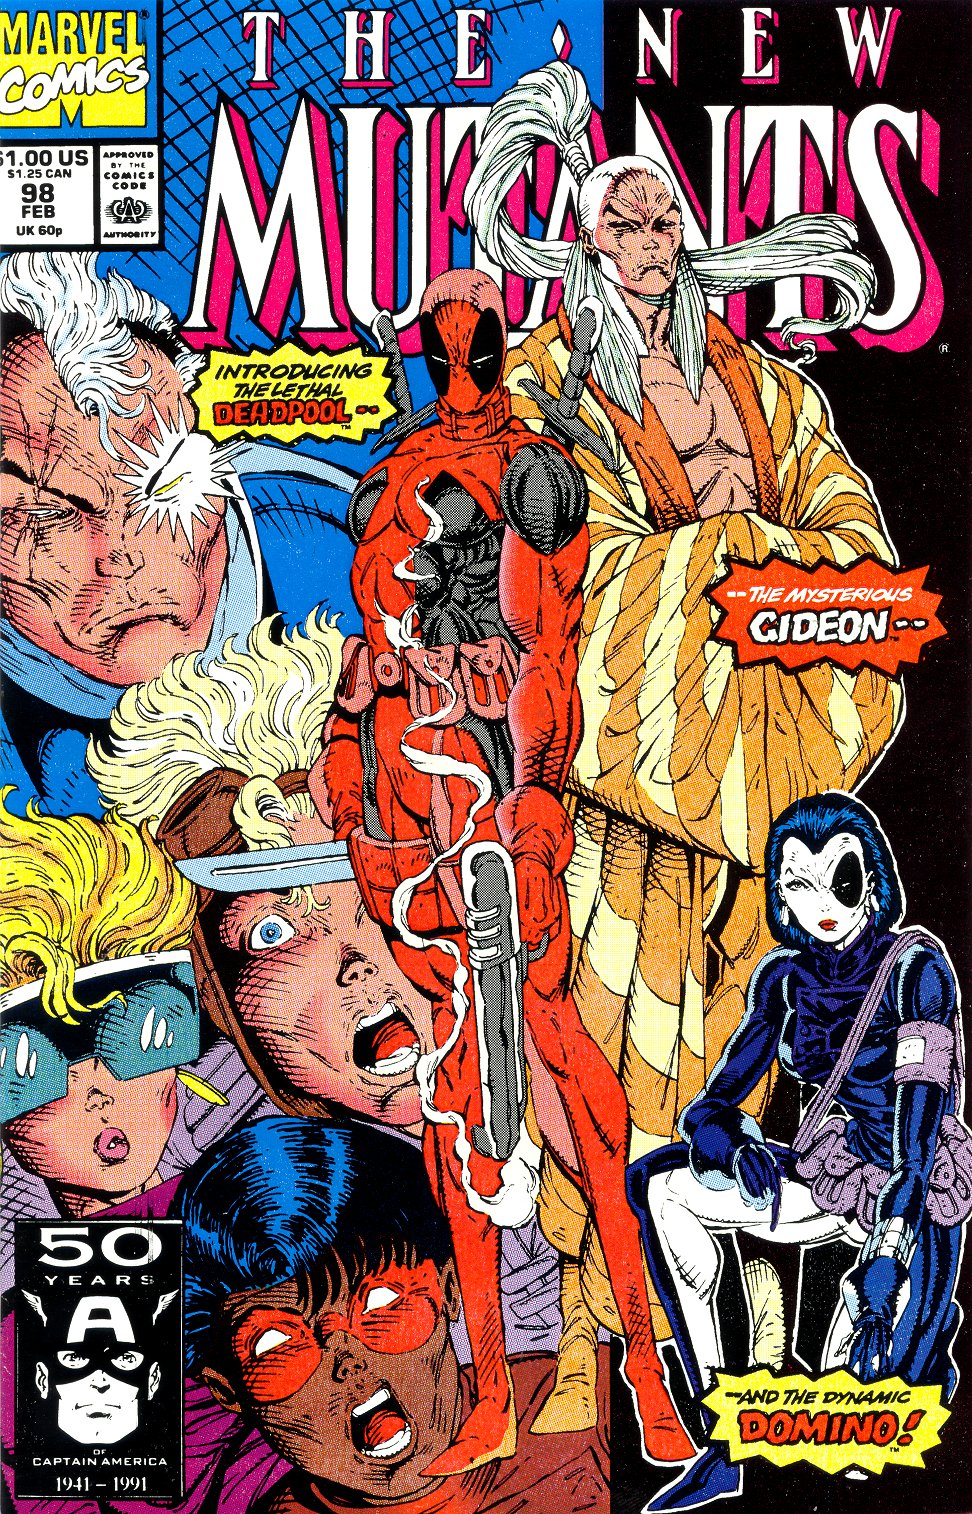 New Mutants #98 (First Appearance of Deadpool) – Reviews Of Old Comics